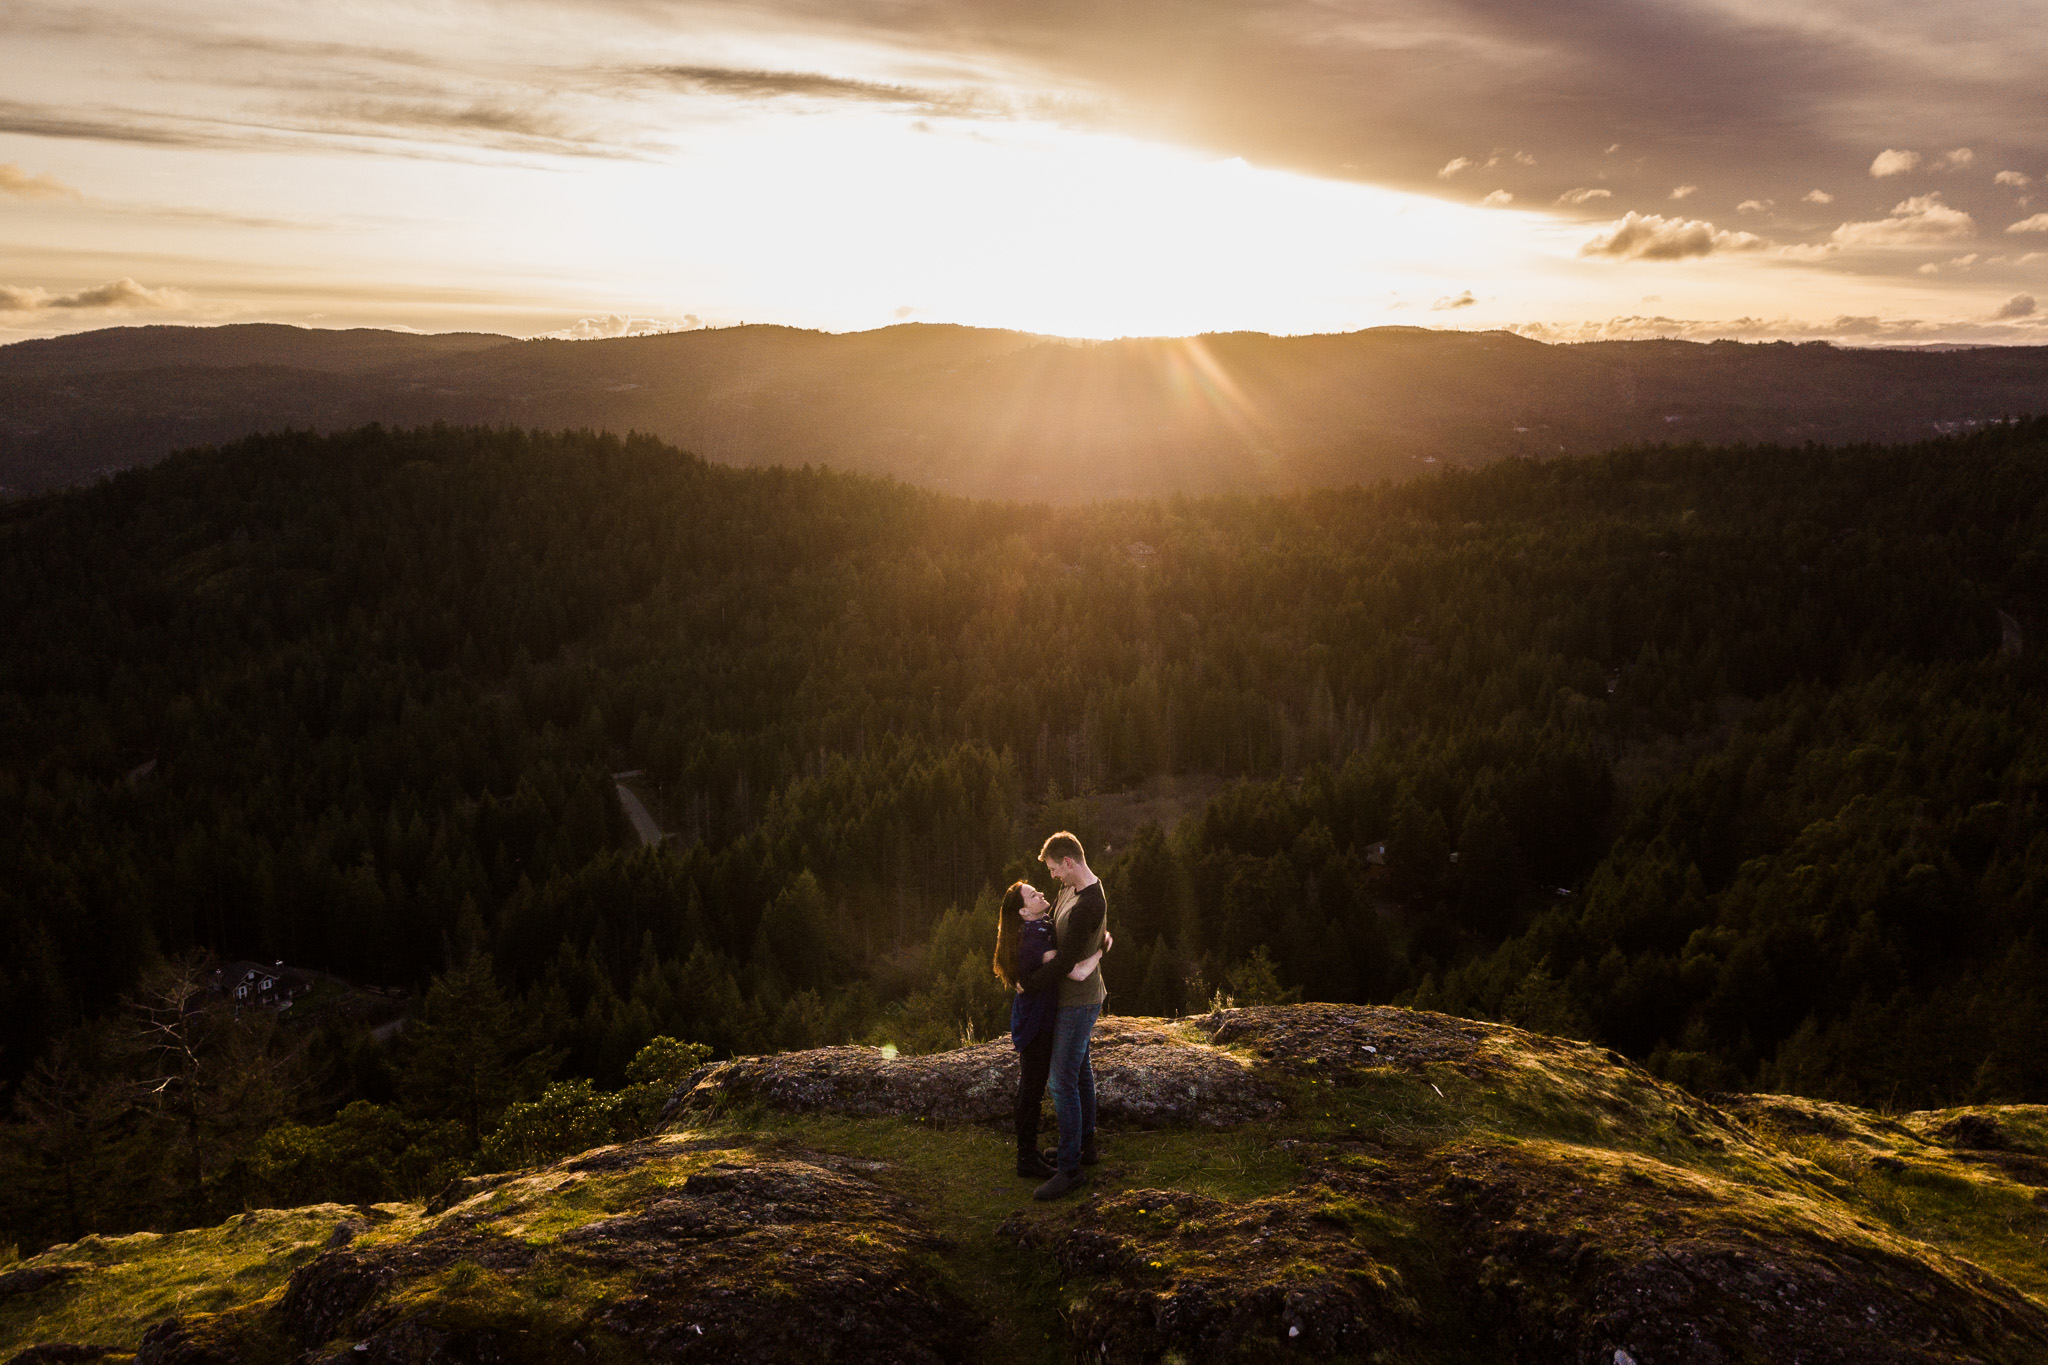 victoria-wedding-photographer-lone-tree-hill-engagement-19.jpg